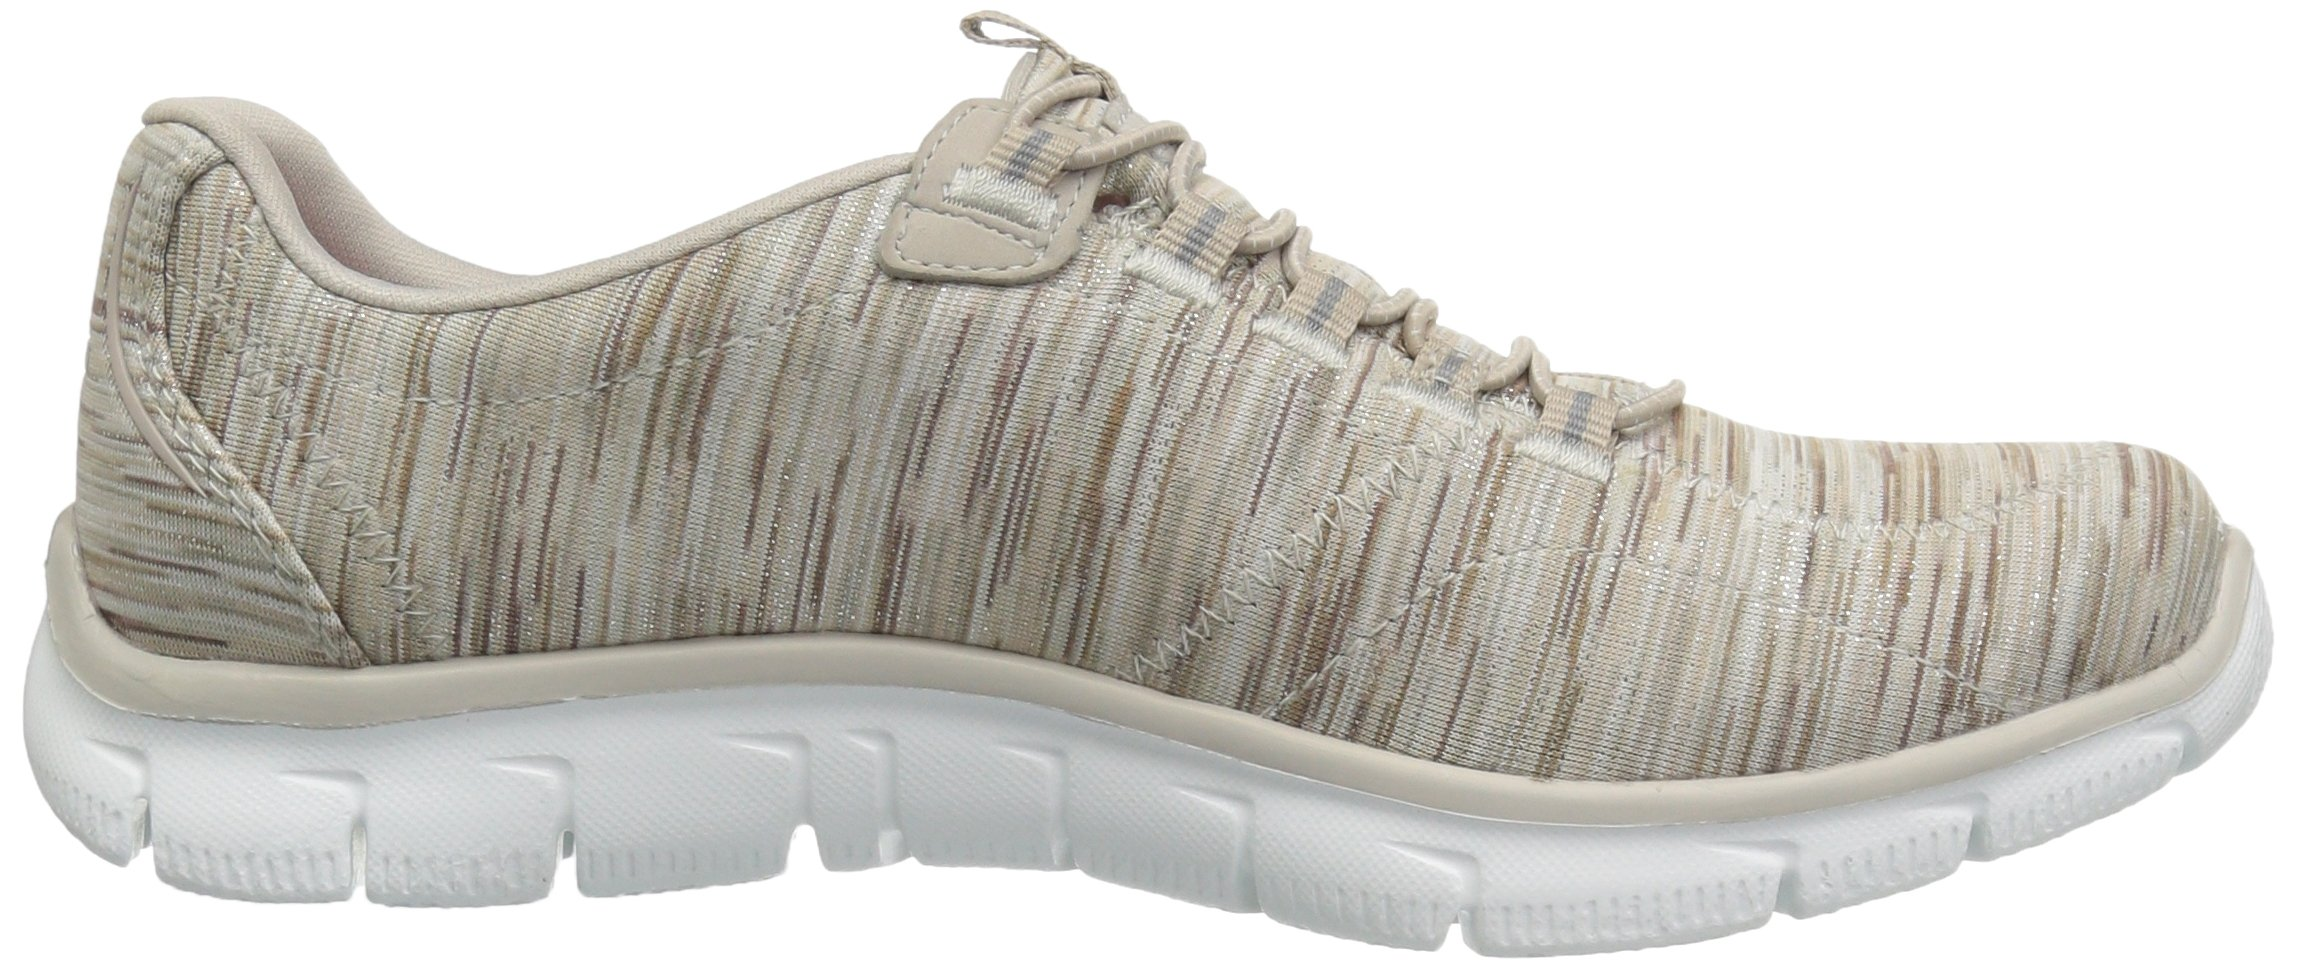 Skechers Women's Empire Game On Memory Foam Sneakers Shoes, Taupe, 6 B(M) US by Skechers (Image #7)